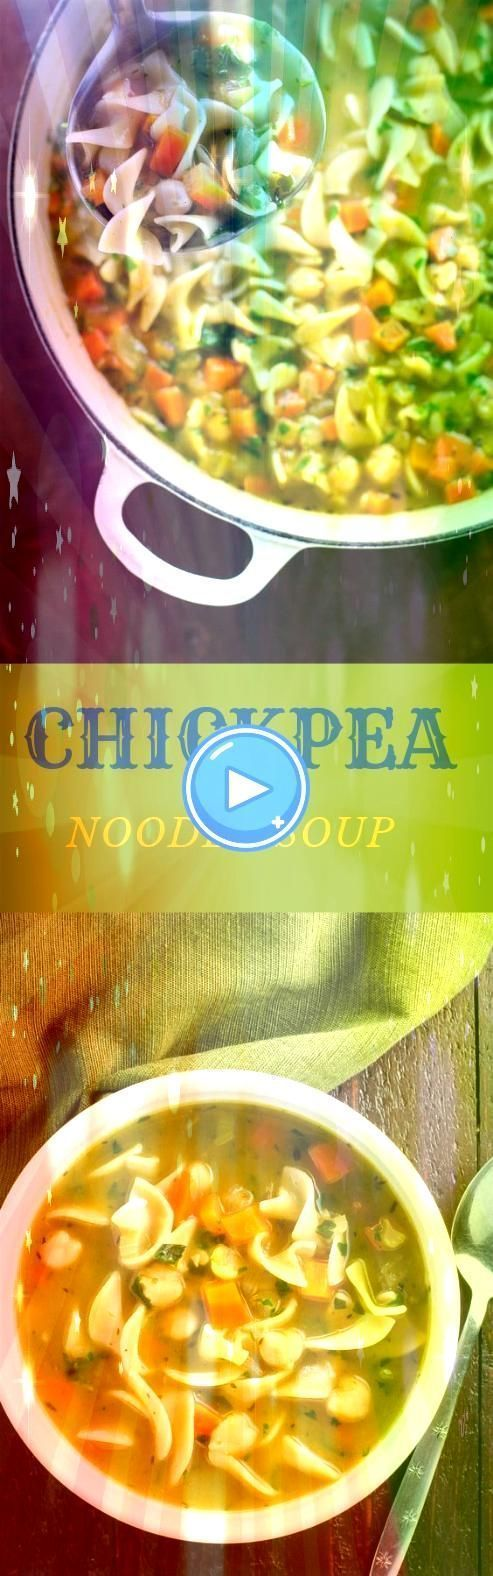 Chickpea Noodle Soup Chickpea Noodle Soup #chickpeanoodlesoup #chickpeanoodlesoup #vegetables #chickpea #noodle #soupChickpea Noodle Soup Chickpea Noodle SoupChickpea Noodle Soup Chickpea Noodle Soup  This easy recipe is the PERFECT appetizer. Tiny biscuits get coated in TONS of garlic butter, creating salty, doughy, cheesy bites you won't be able to stop eating  This pasta casserole is loaded with fresh spinach, tomatoes and mozzarella cheese. A delicious vegetarian bake that is a simple recipe #chickpeanoodlesoup